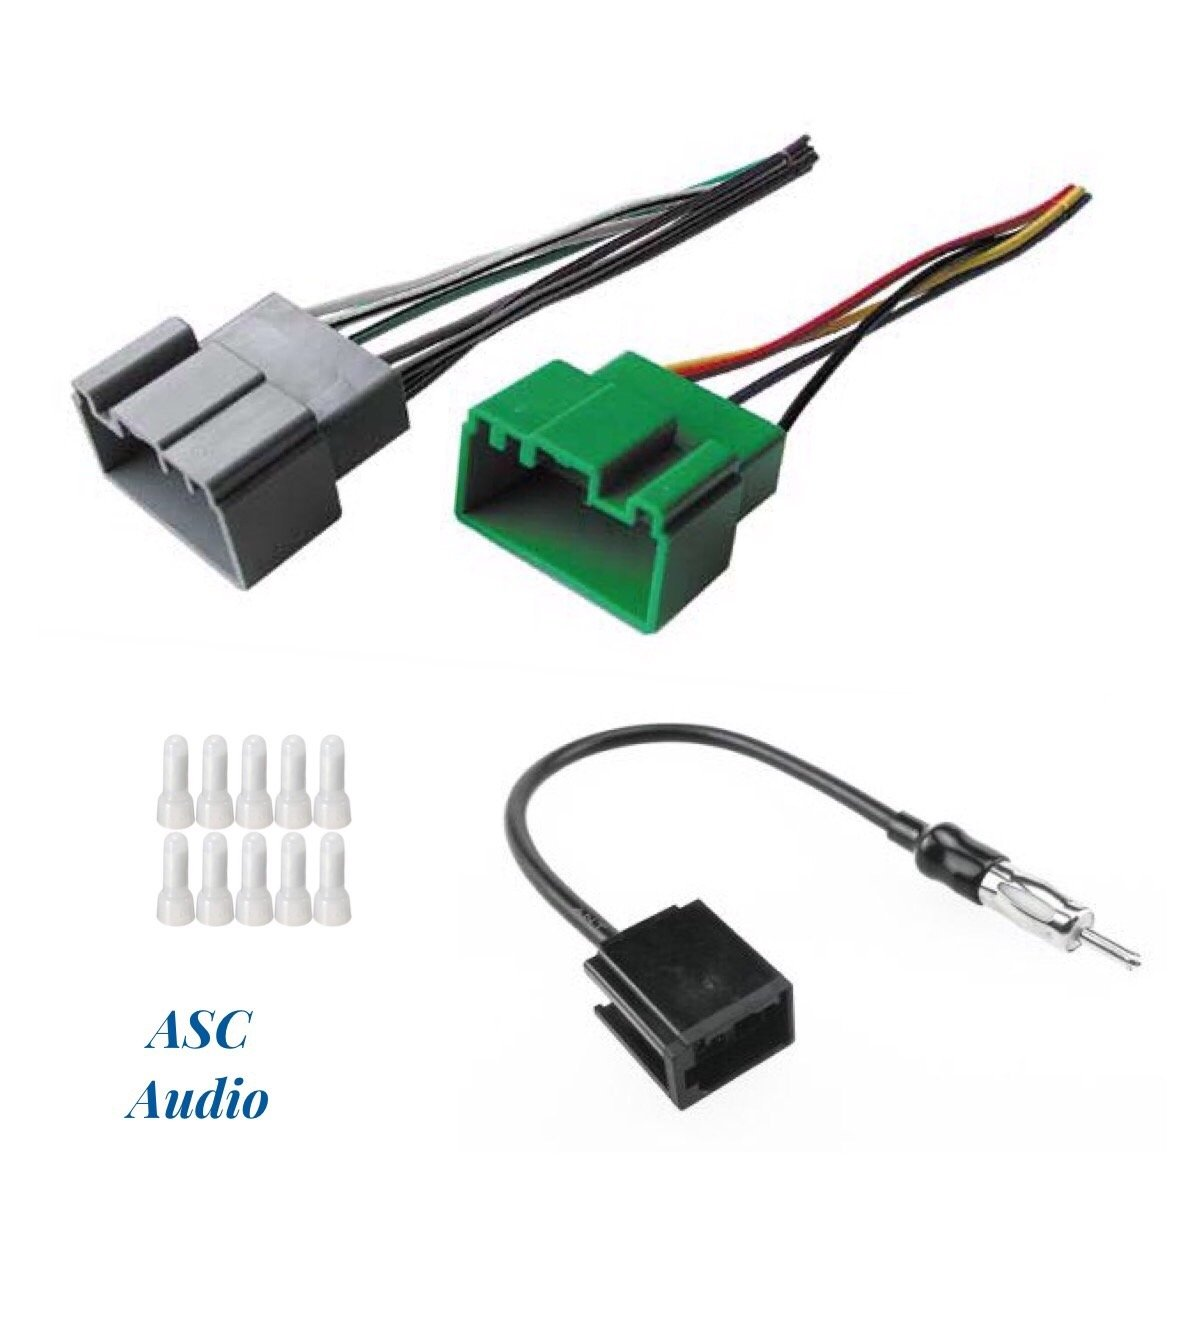 ASC Audio Car Stereo Radio Wire Harness and Antenna Adapter to Install an  Aftermarket Radio for